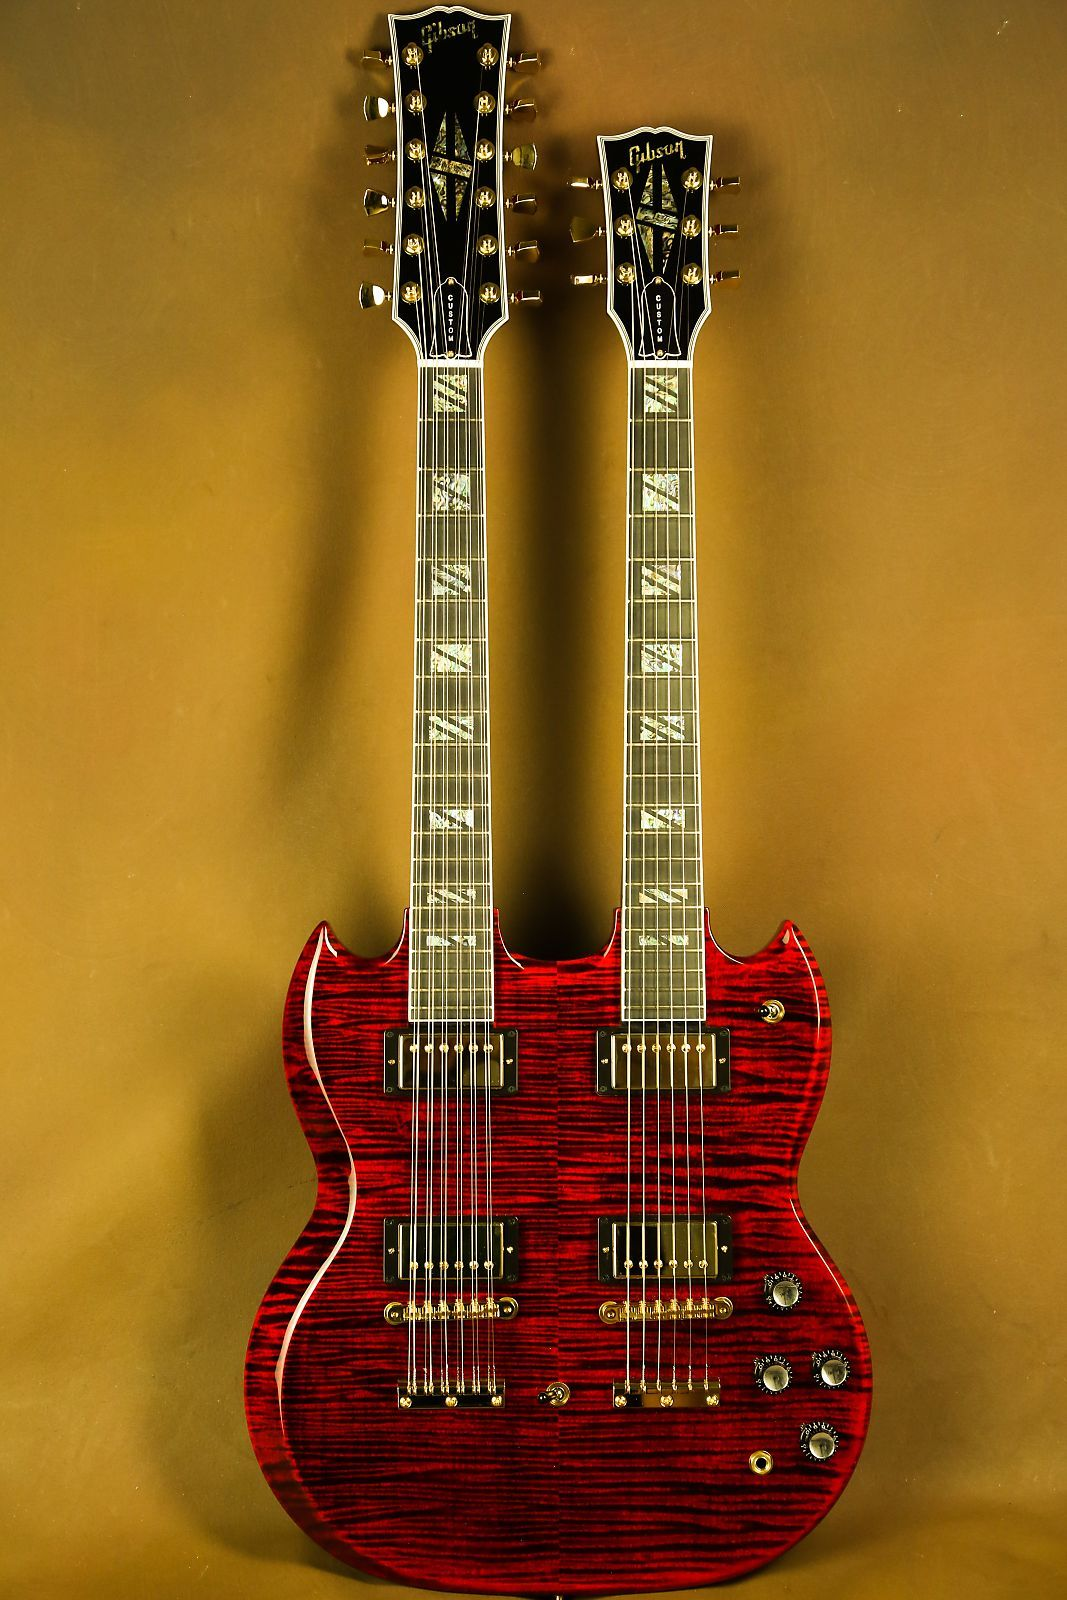 Here is one of the coolest guitars ever the gibson eds 1275 gibson les paul cheapraybanclubmaster Choice Image